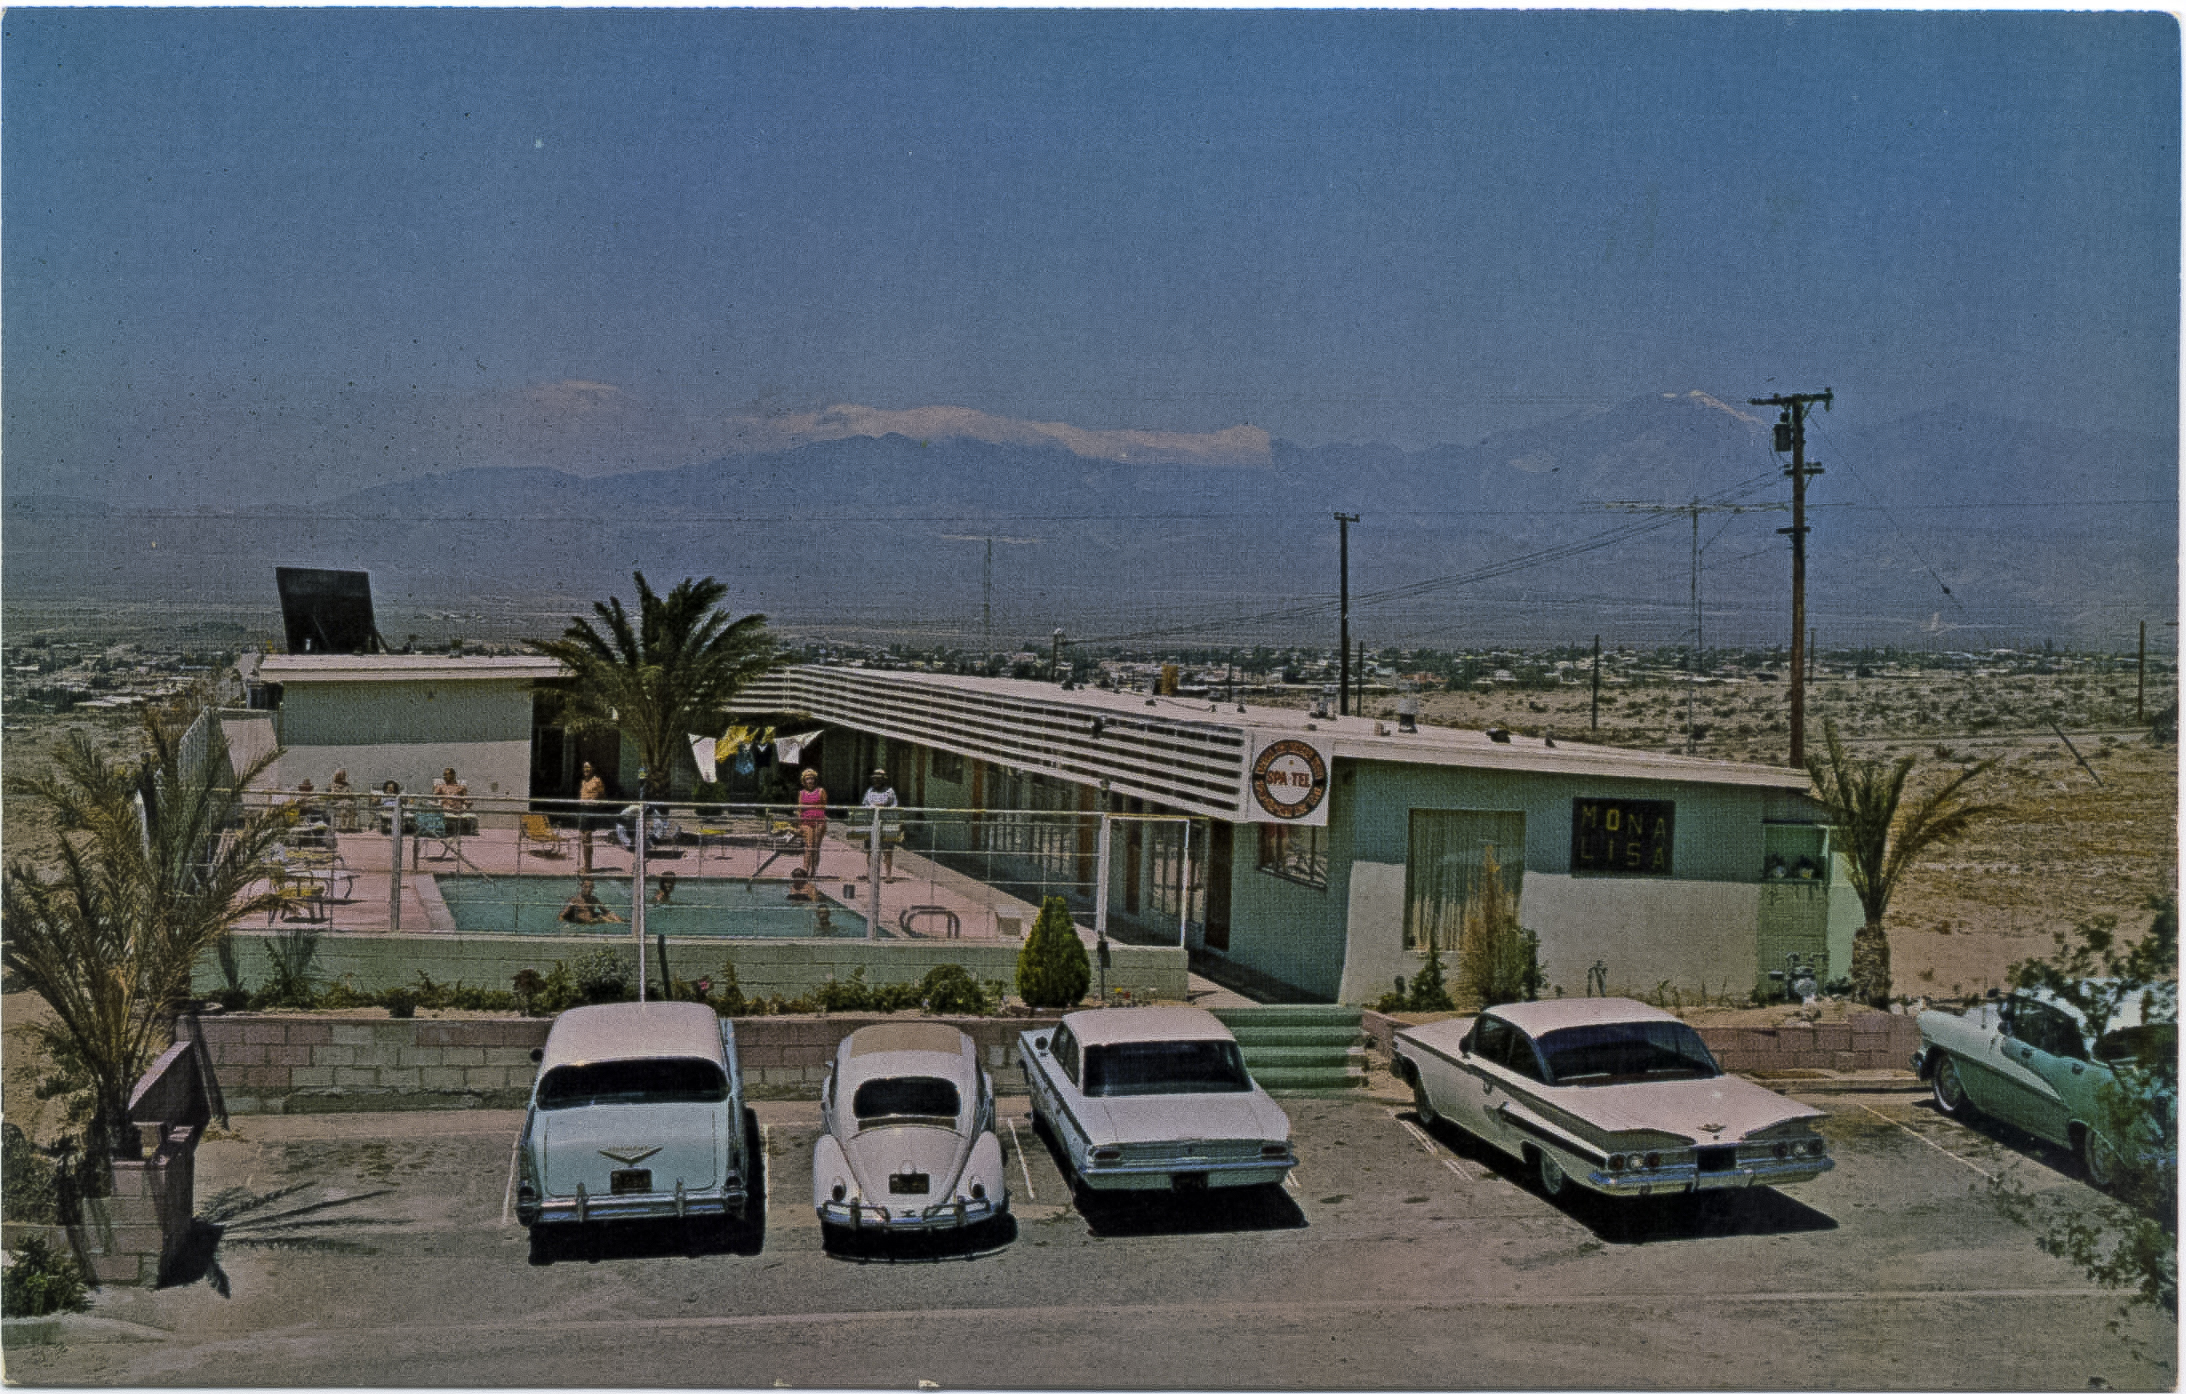 Mona Lisa Motel Spa-Tel undated front